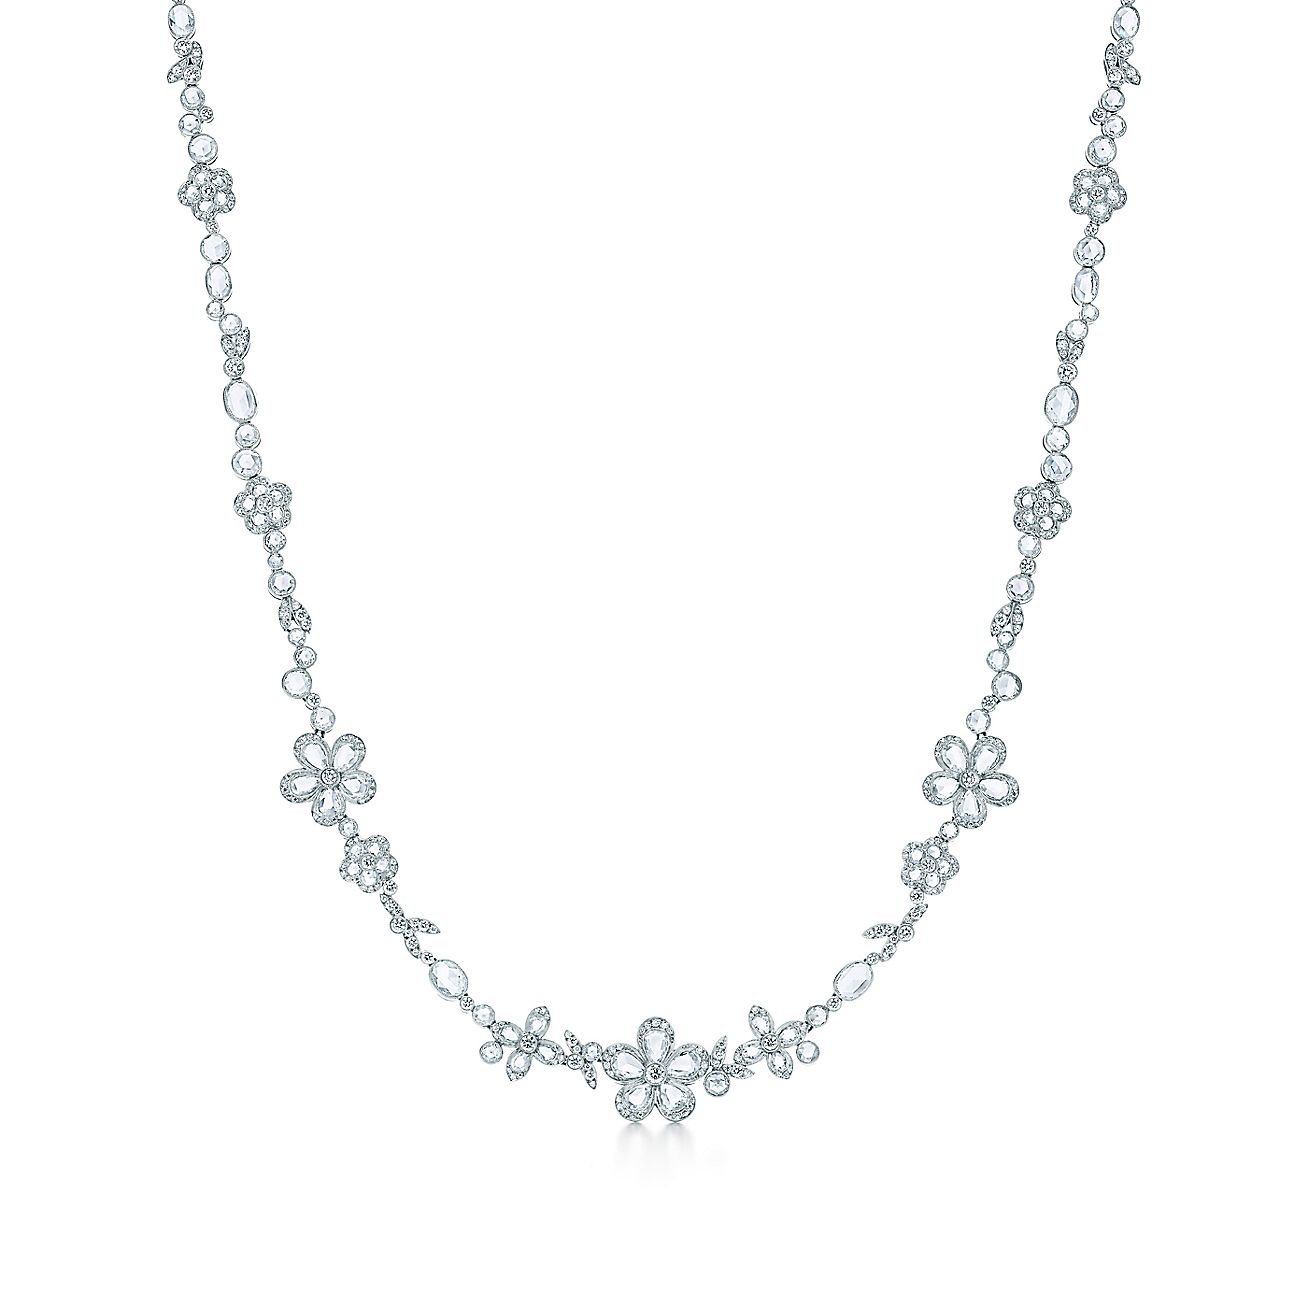 Tiffany Enchant® flower necklace in platinum with diamonds